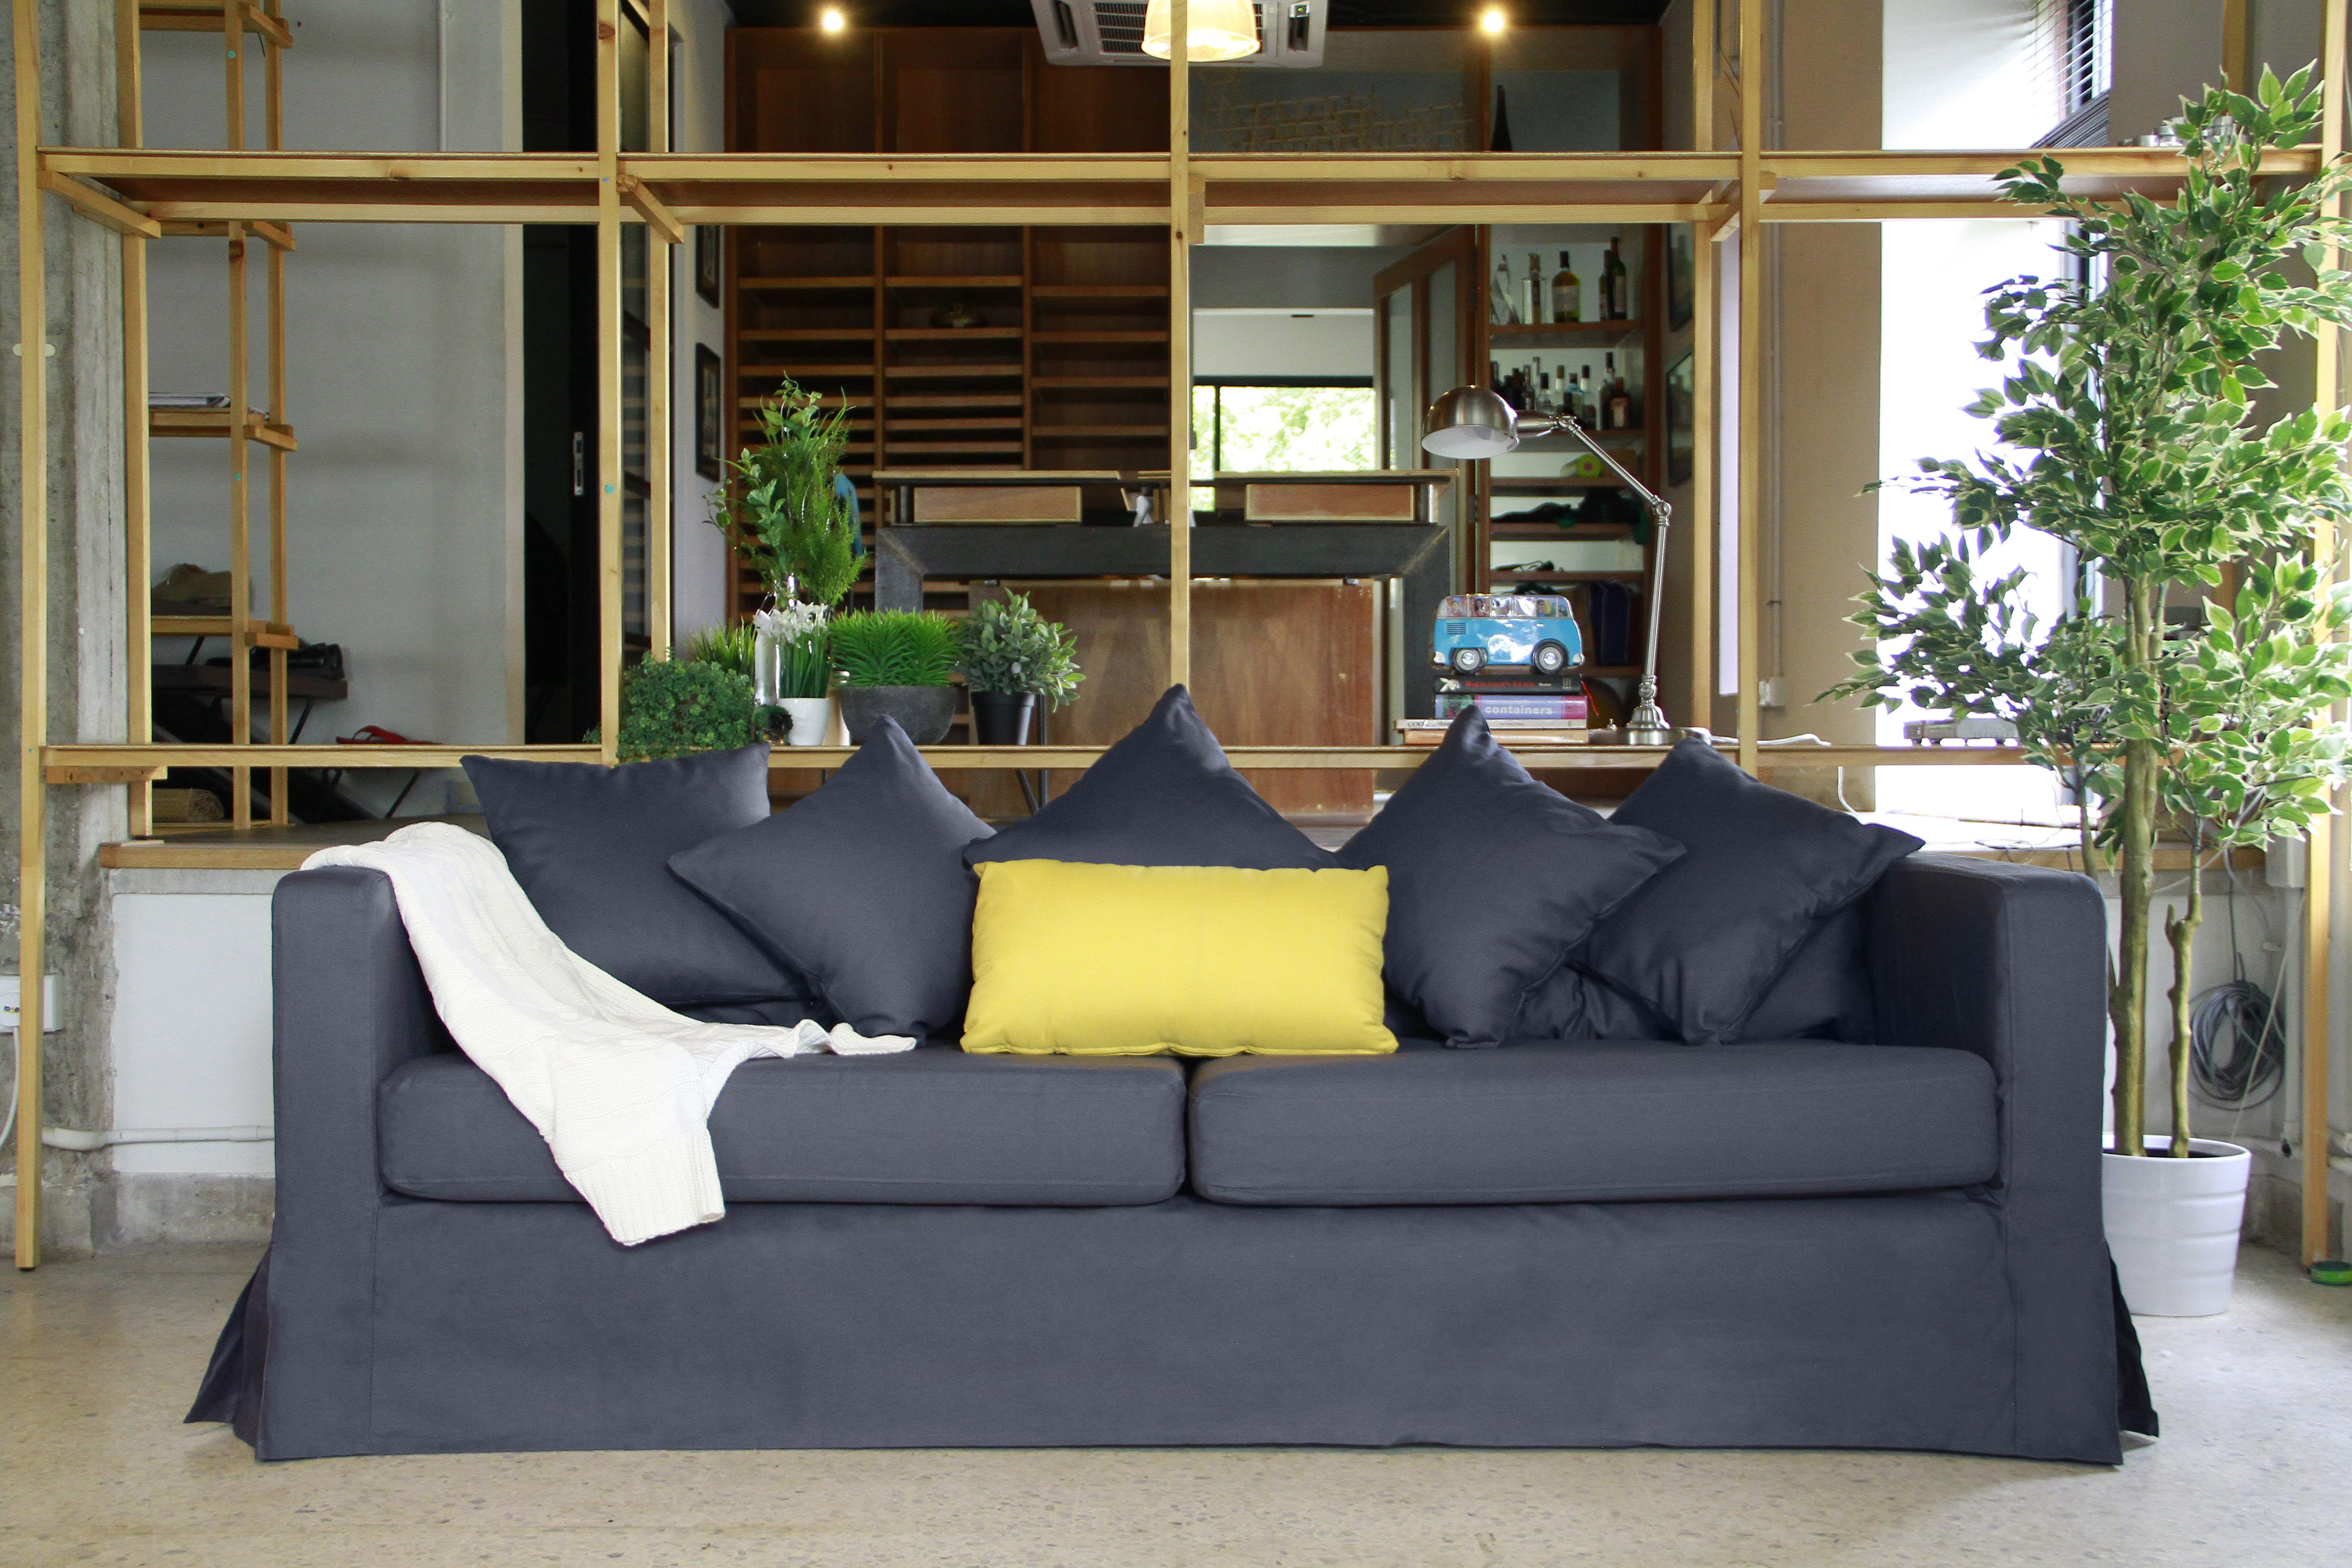 What exactly is a slipcover and how will it look on my sofa?